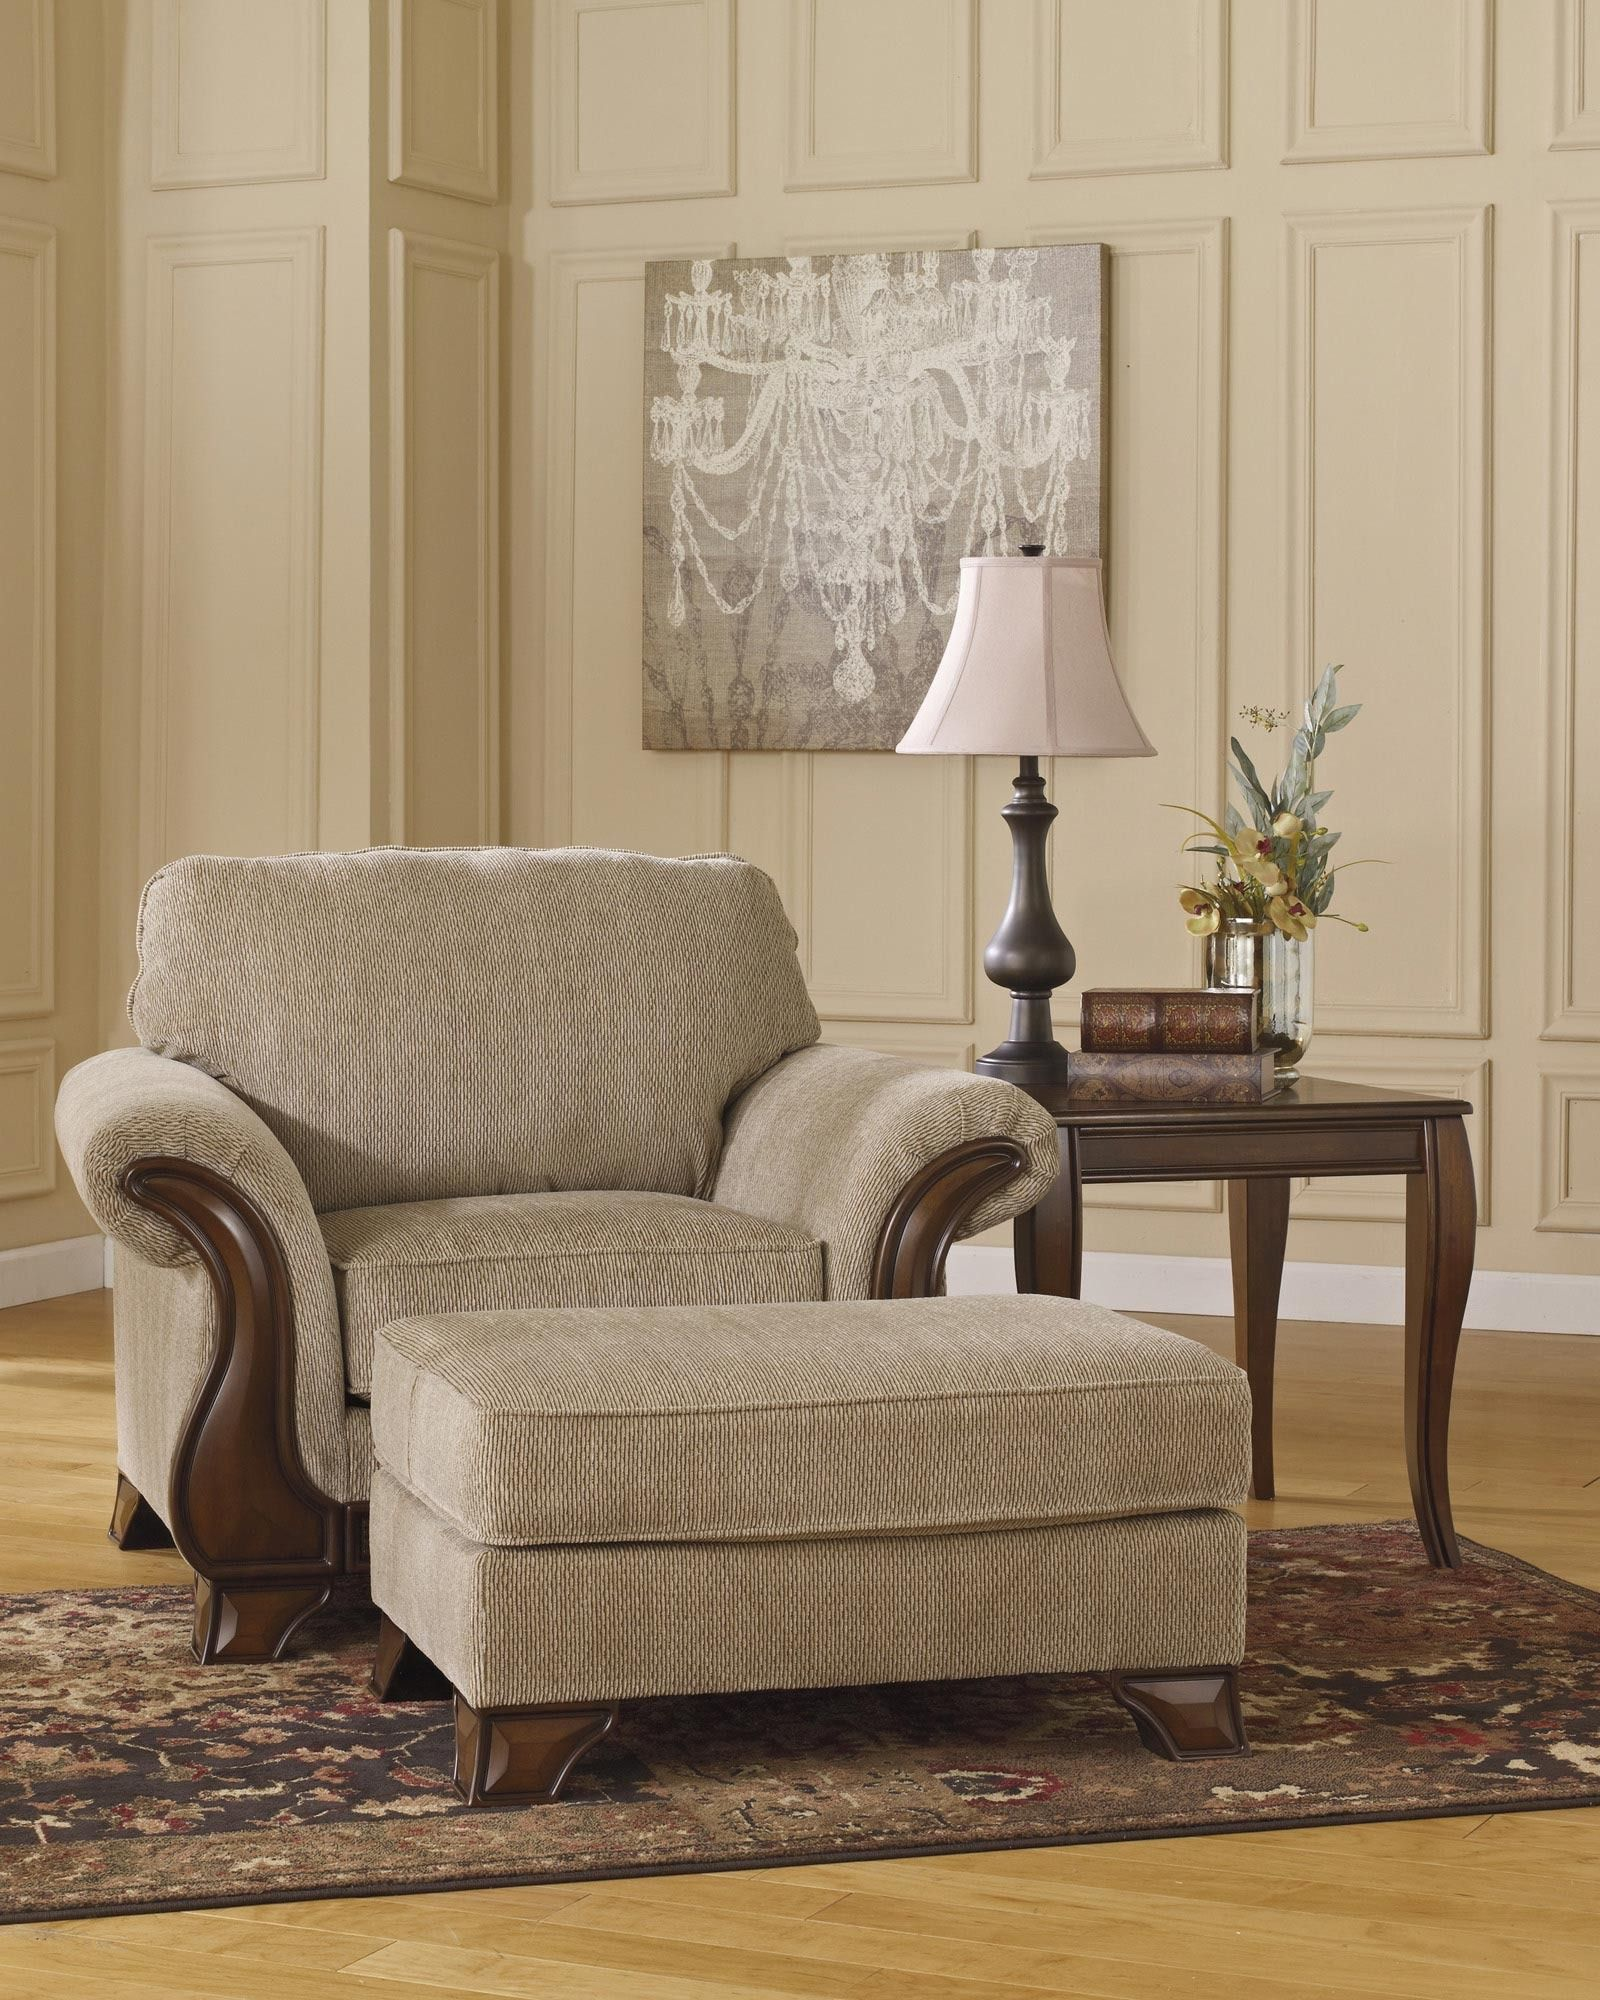 Chair ashley home gallery stores chair and